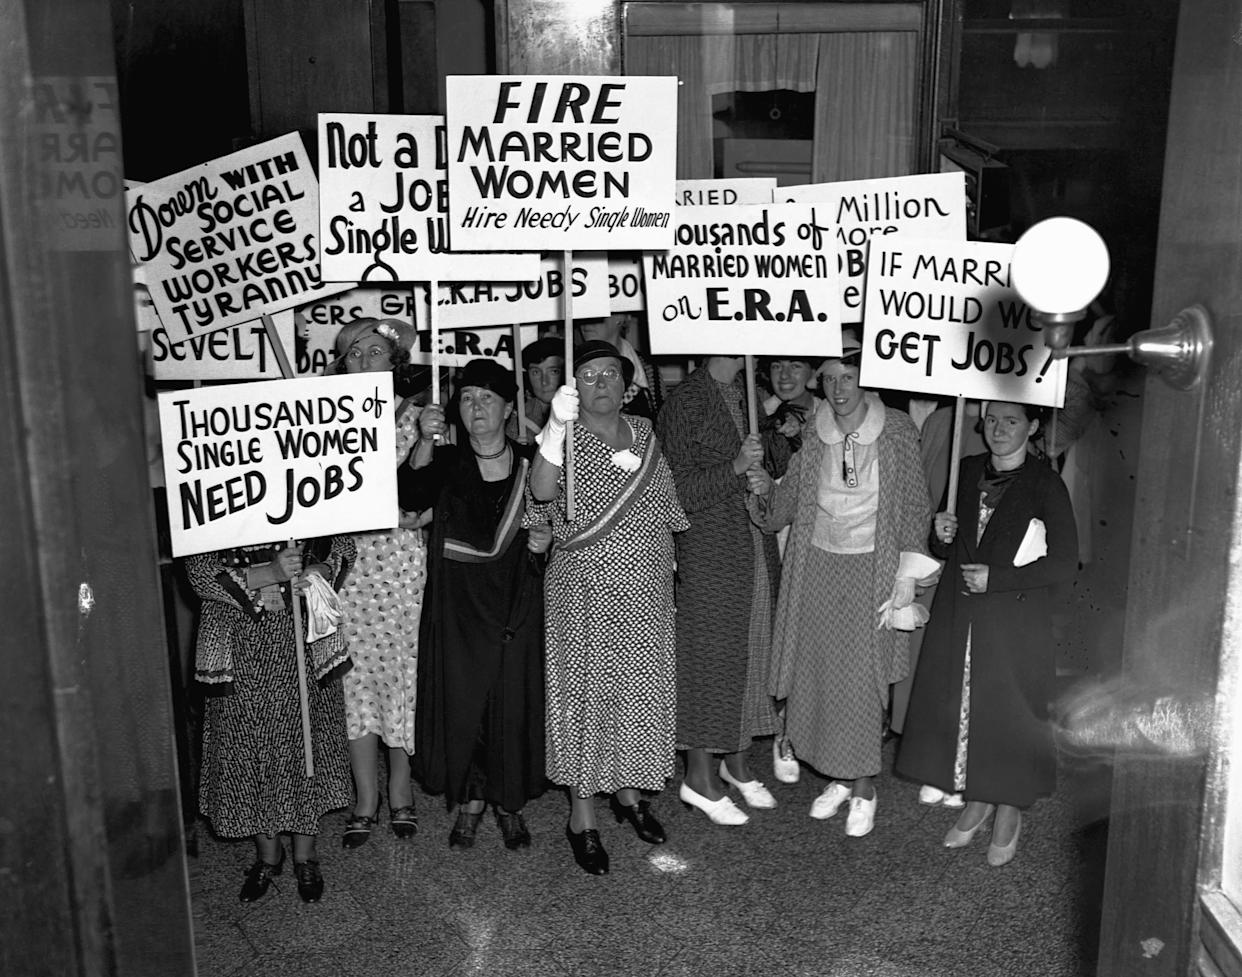 Unemployed, single women protesting the job placement of married women before themselves at the Emergency Relief Administration headquarters in Boston, Massachusetts June 24, 1935.